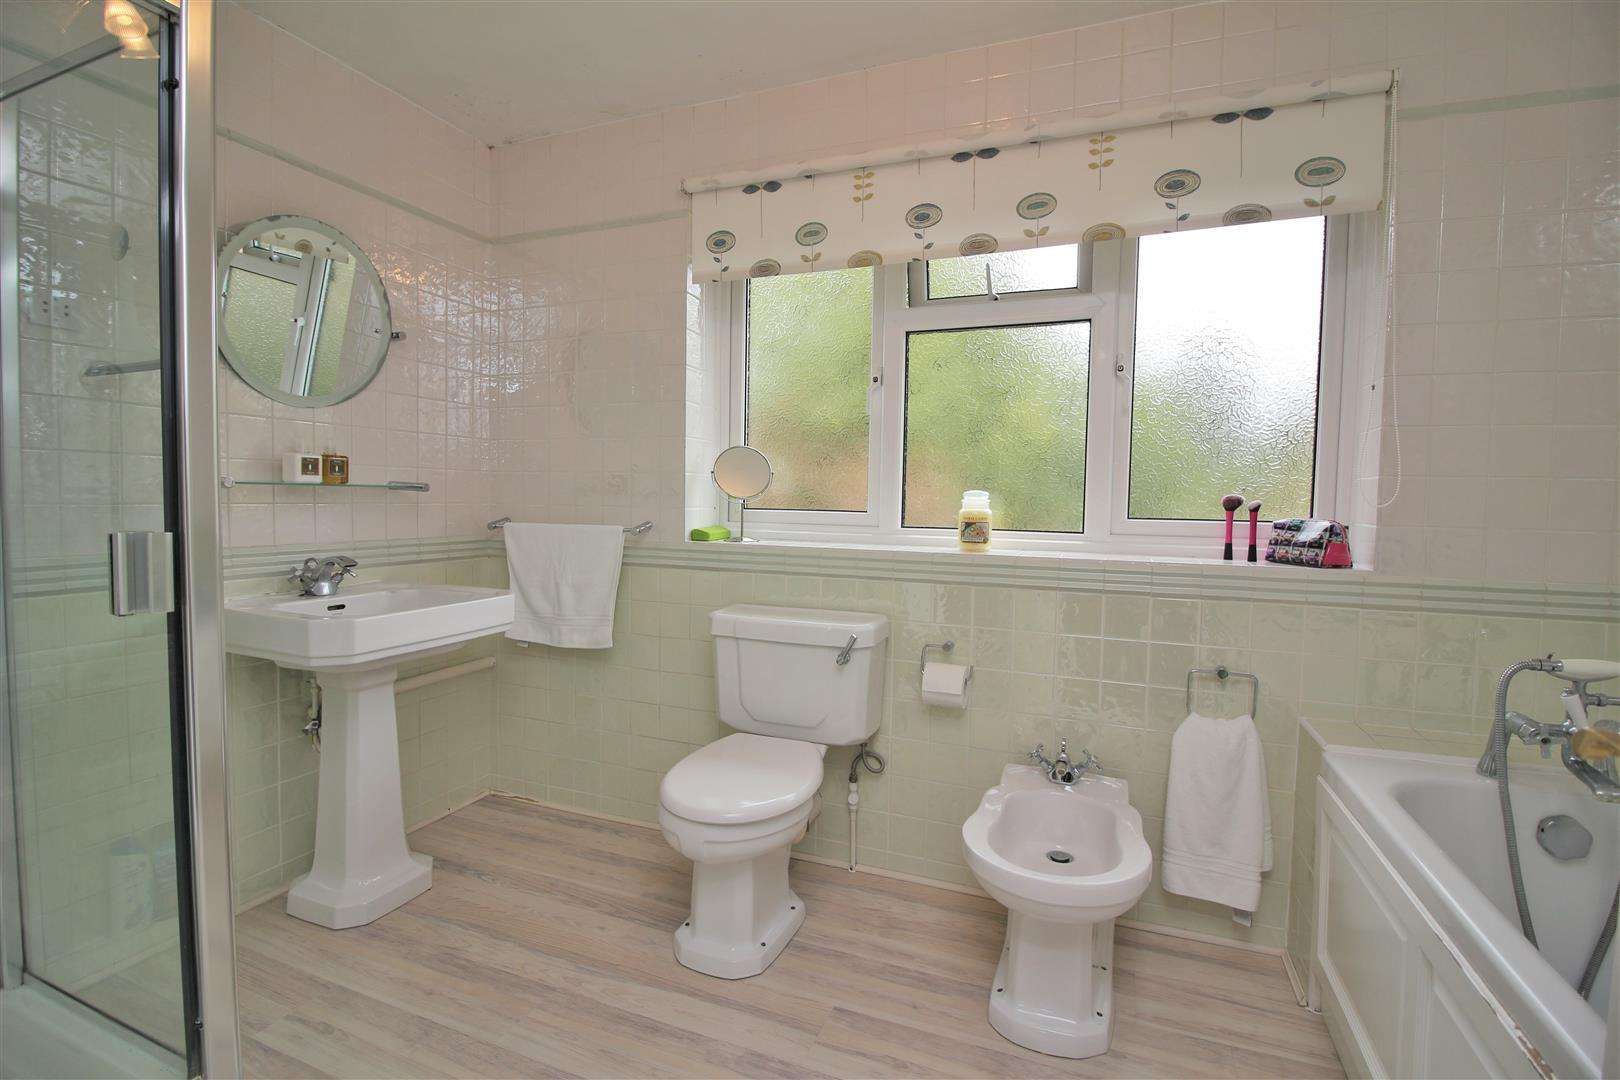 5 bed for sale - (Property Image 8)